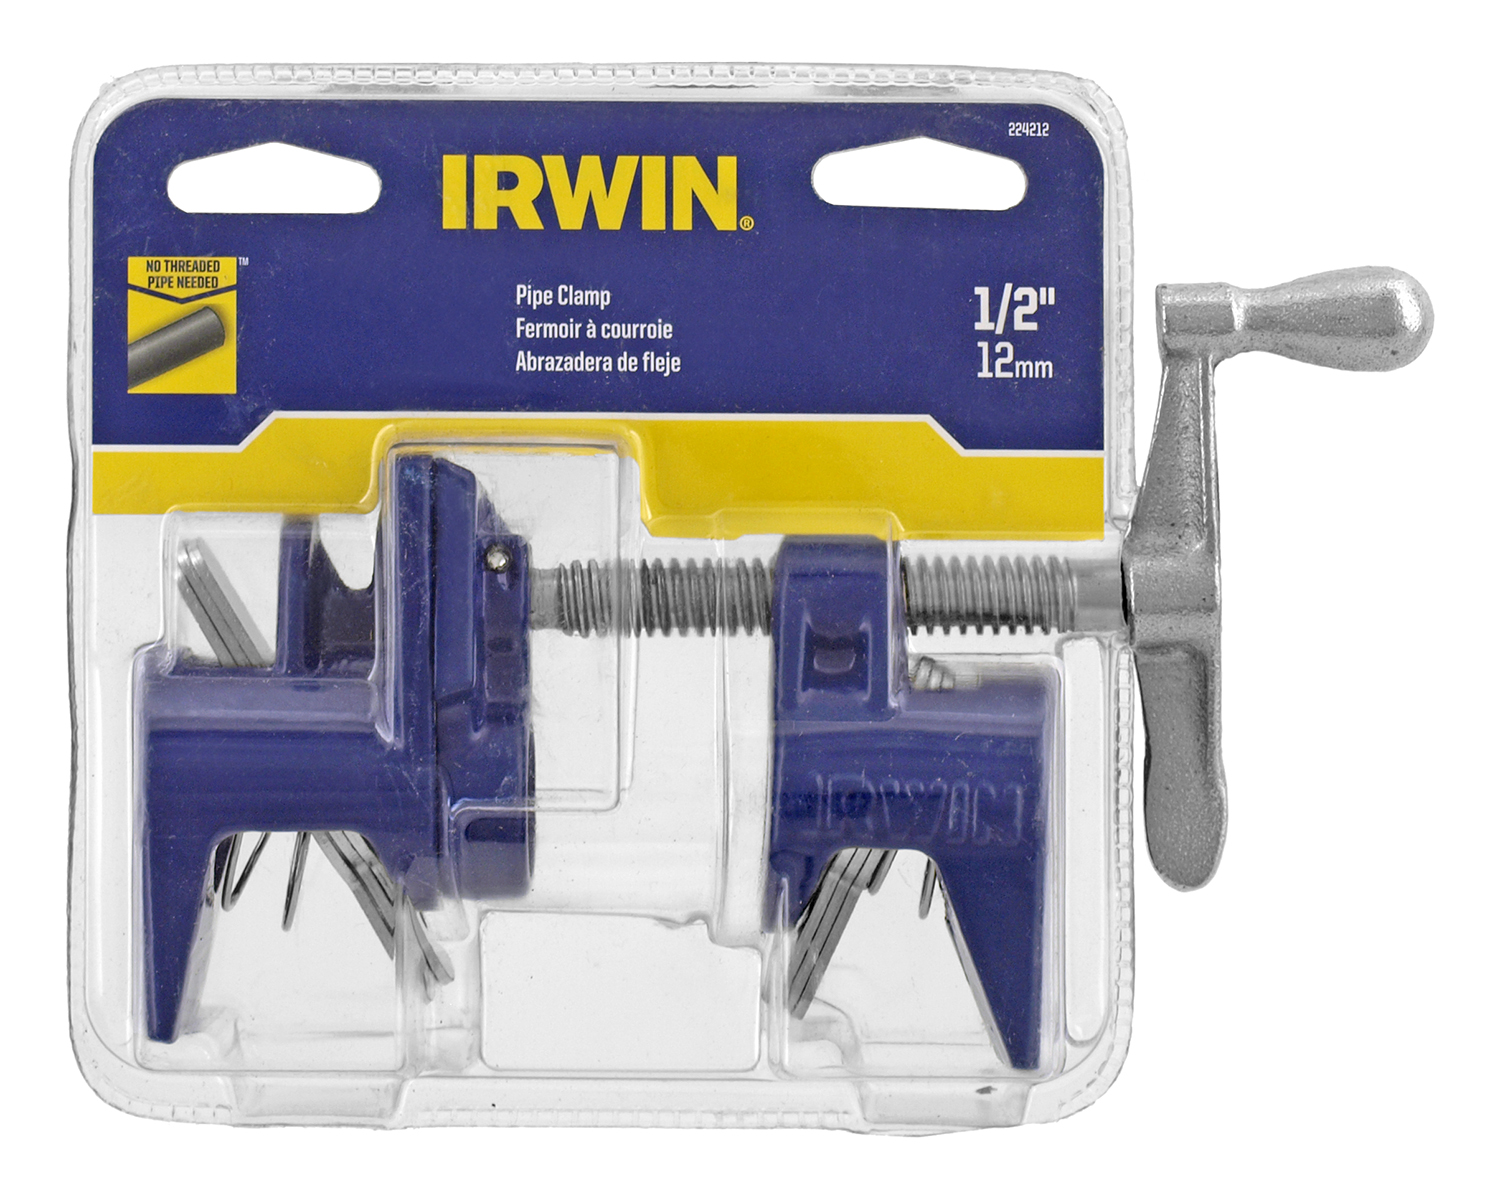 1/2 in Pipe Clamp Vise 224212  - Irwin